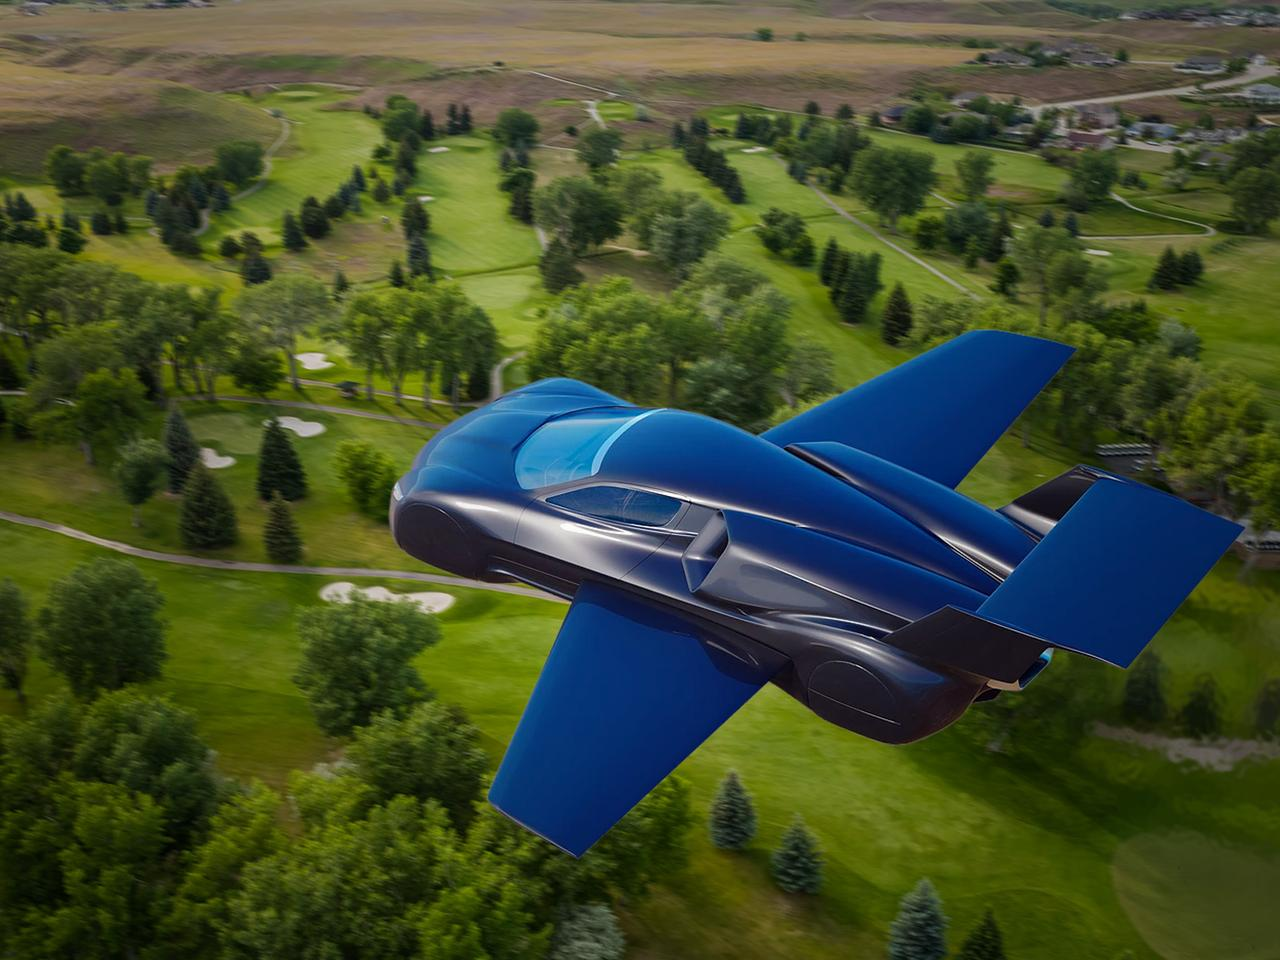 The Firenze Lanciare flying car would use jet engines and large fuel supplies to make long-range, high-speed air travel possible